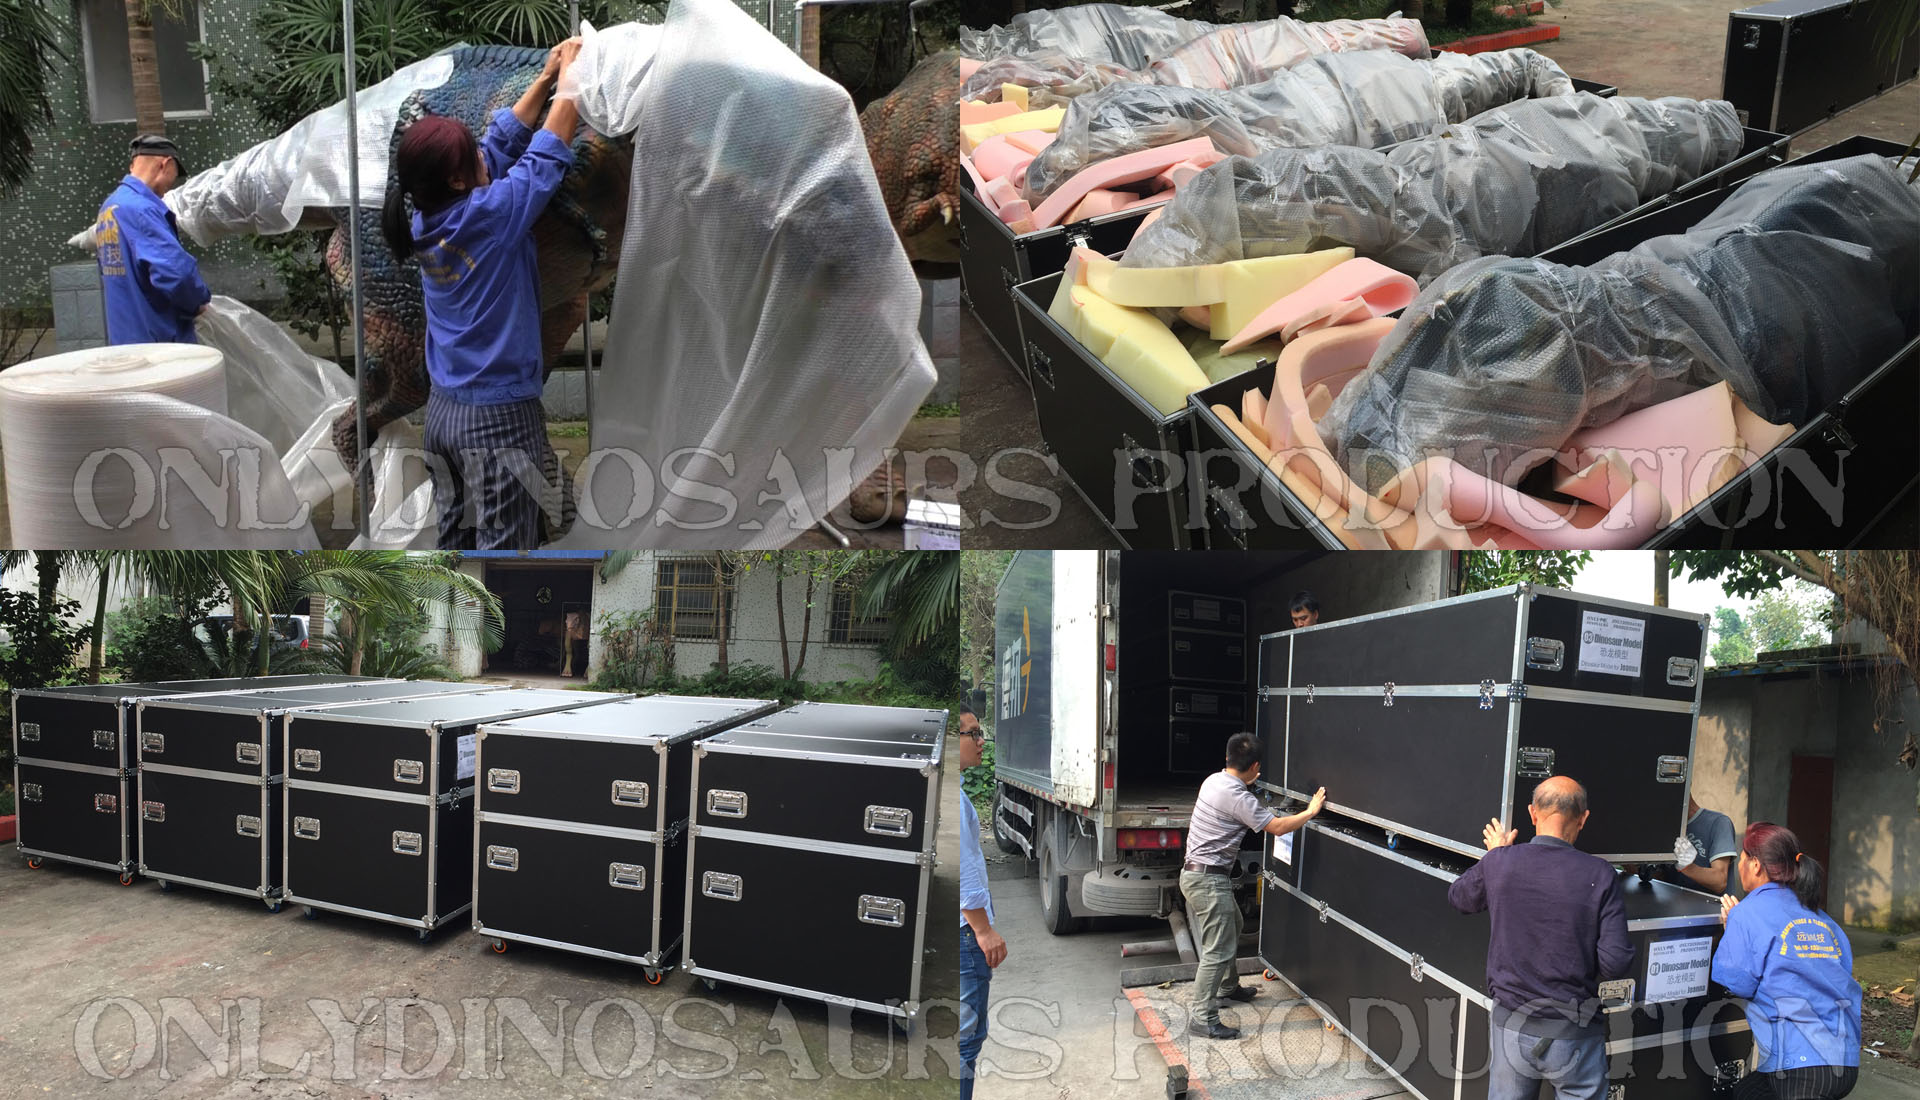 Dinosaur Suit Packing & Delivery